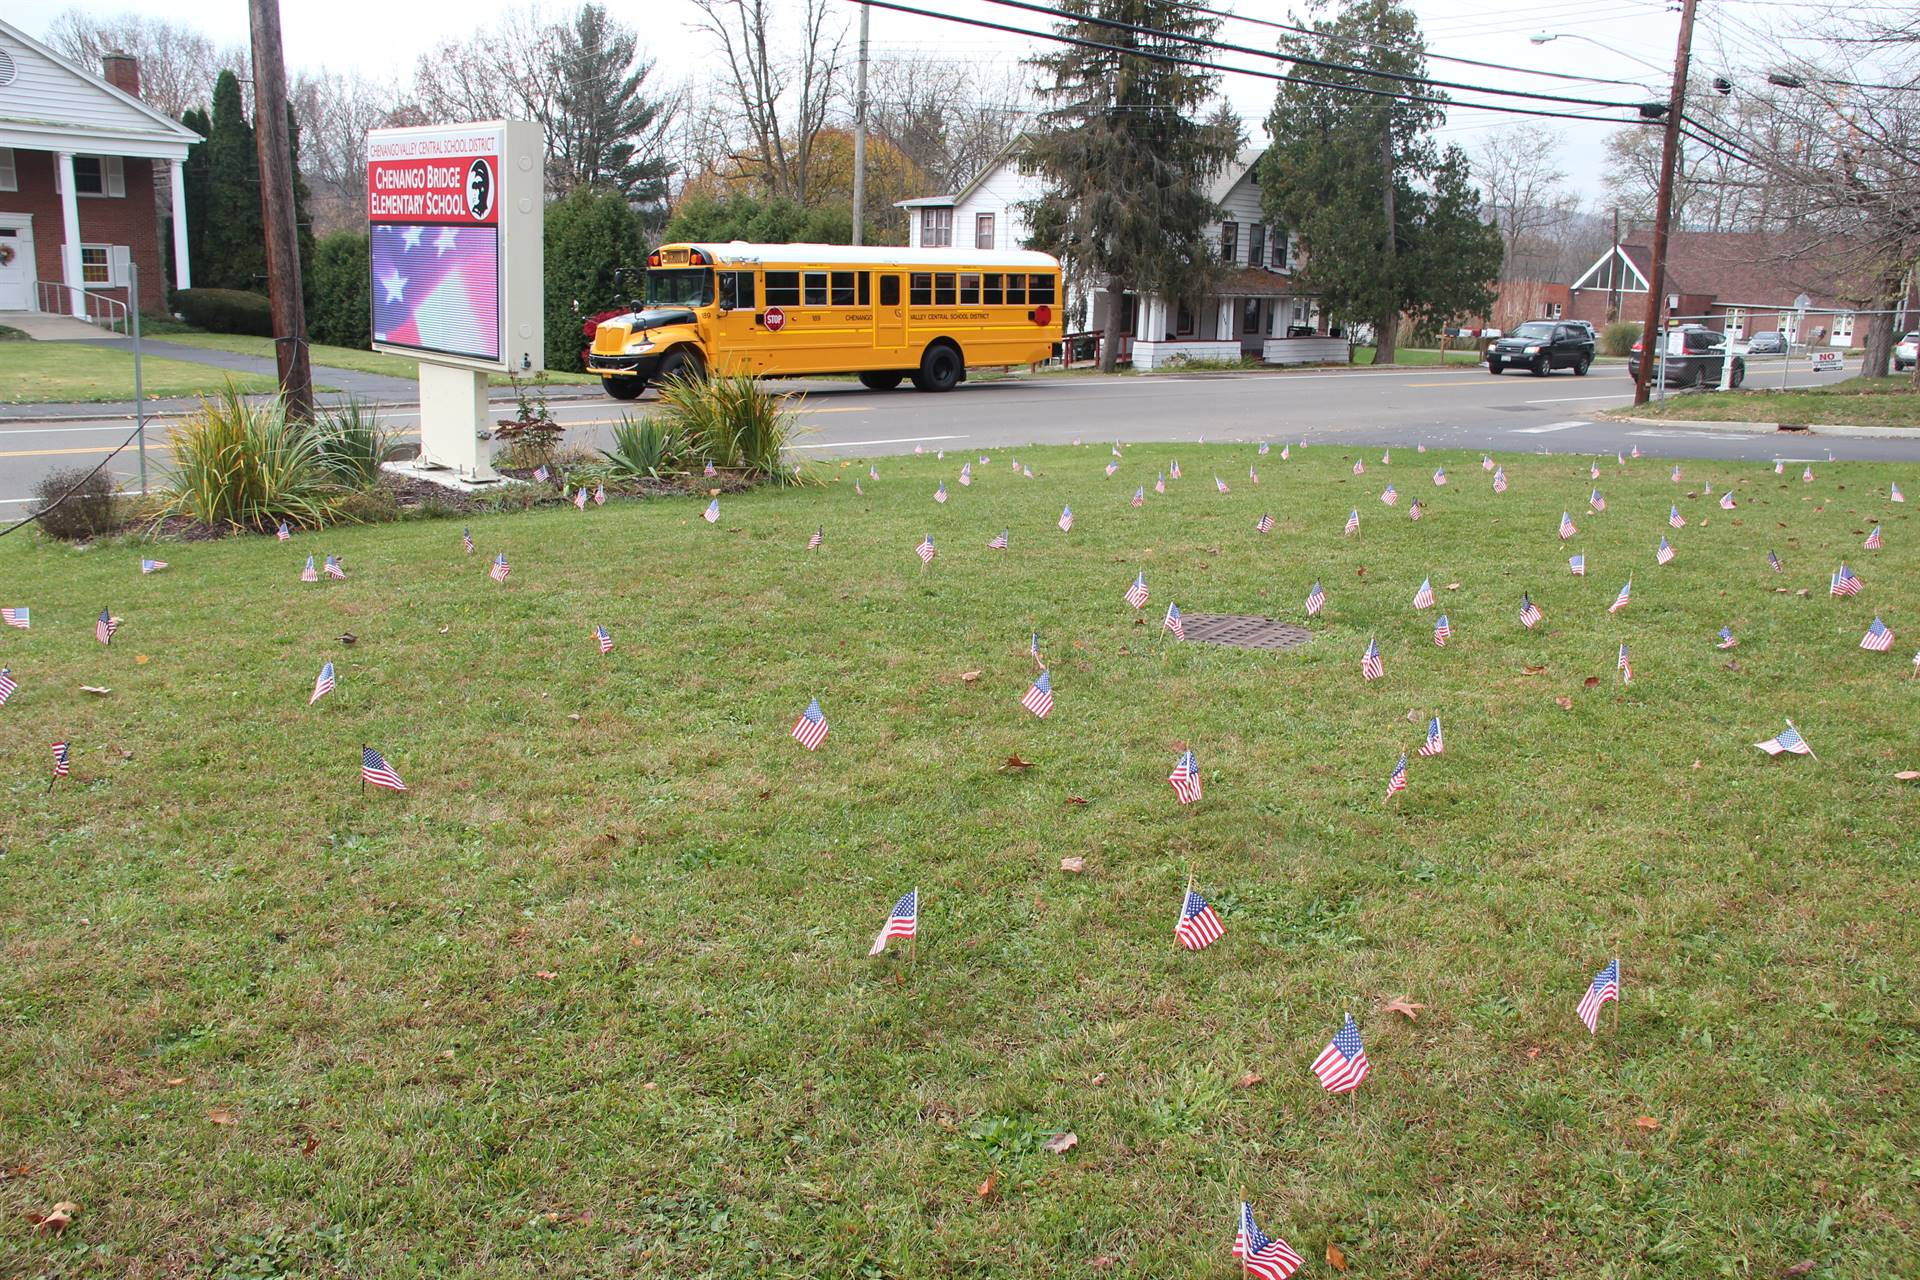 lawn full of flags with c v bus in background